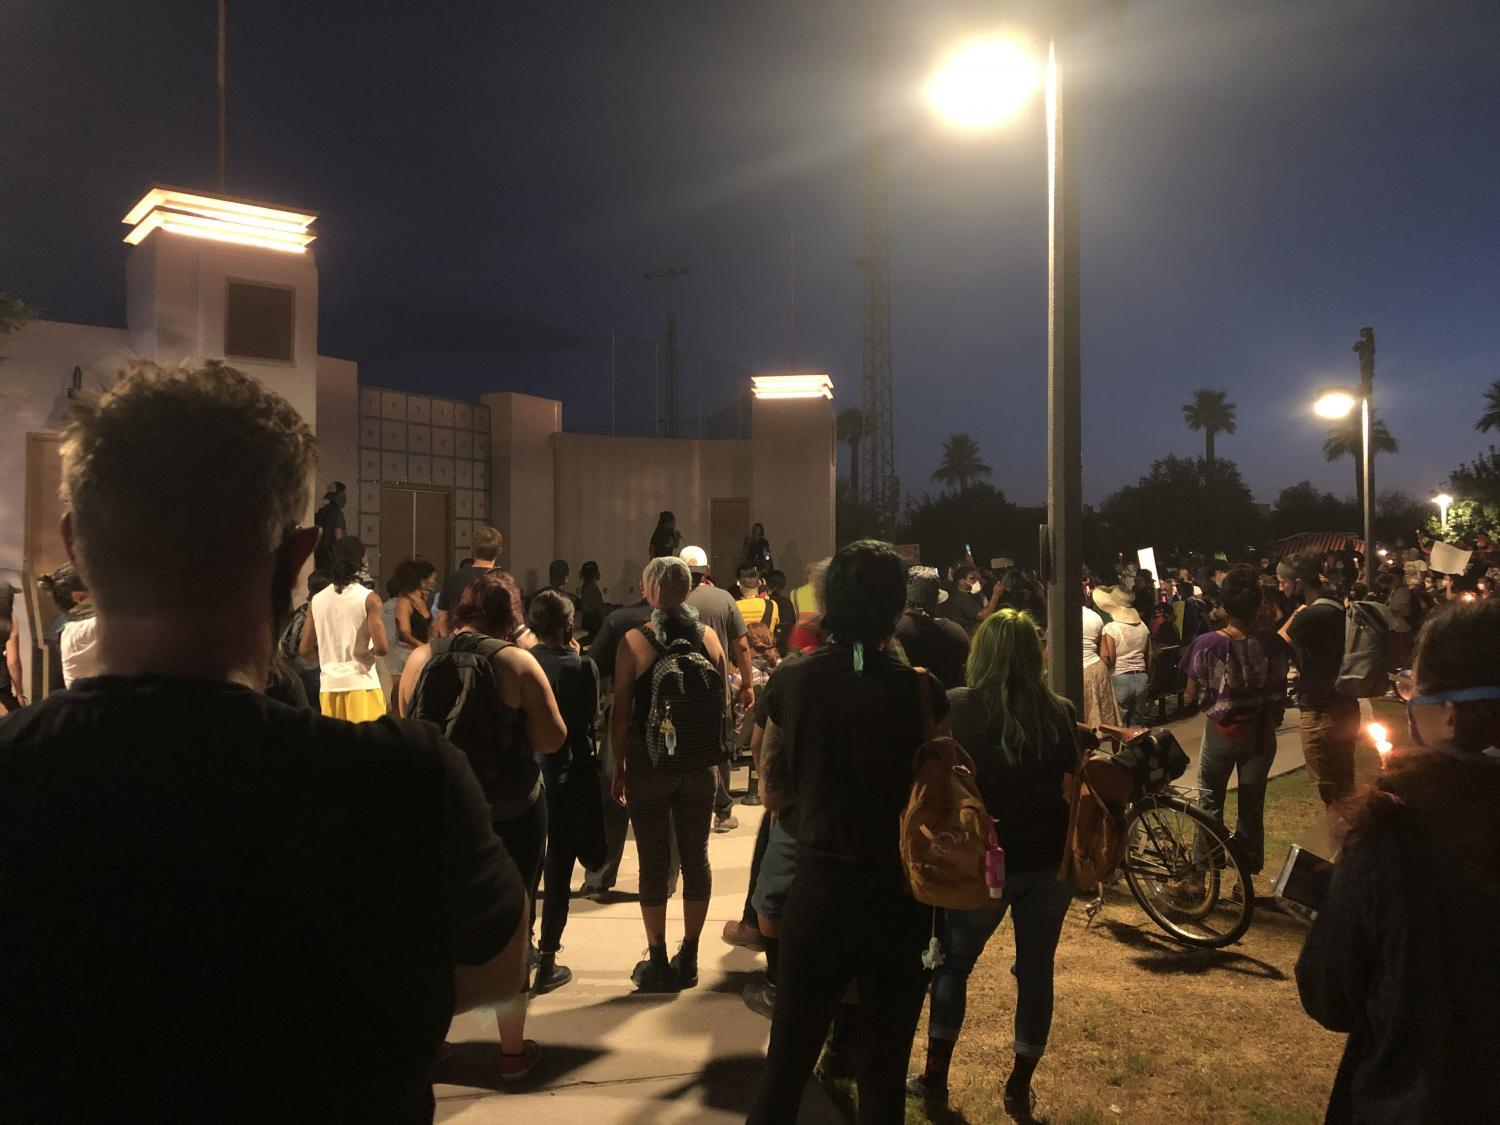 A vigil for Dion Johnson, who was killed by a state trooper Monday, May 25th.